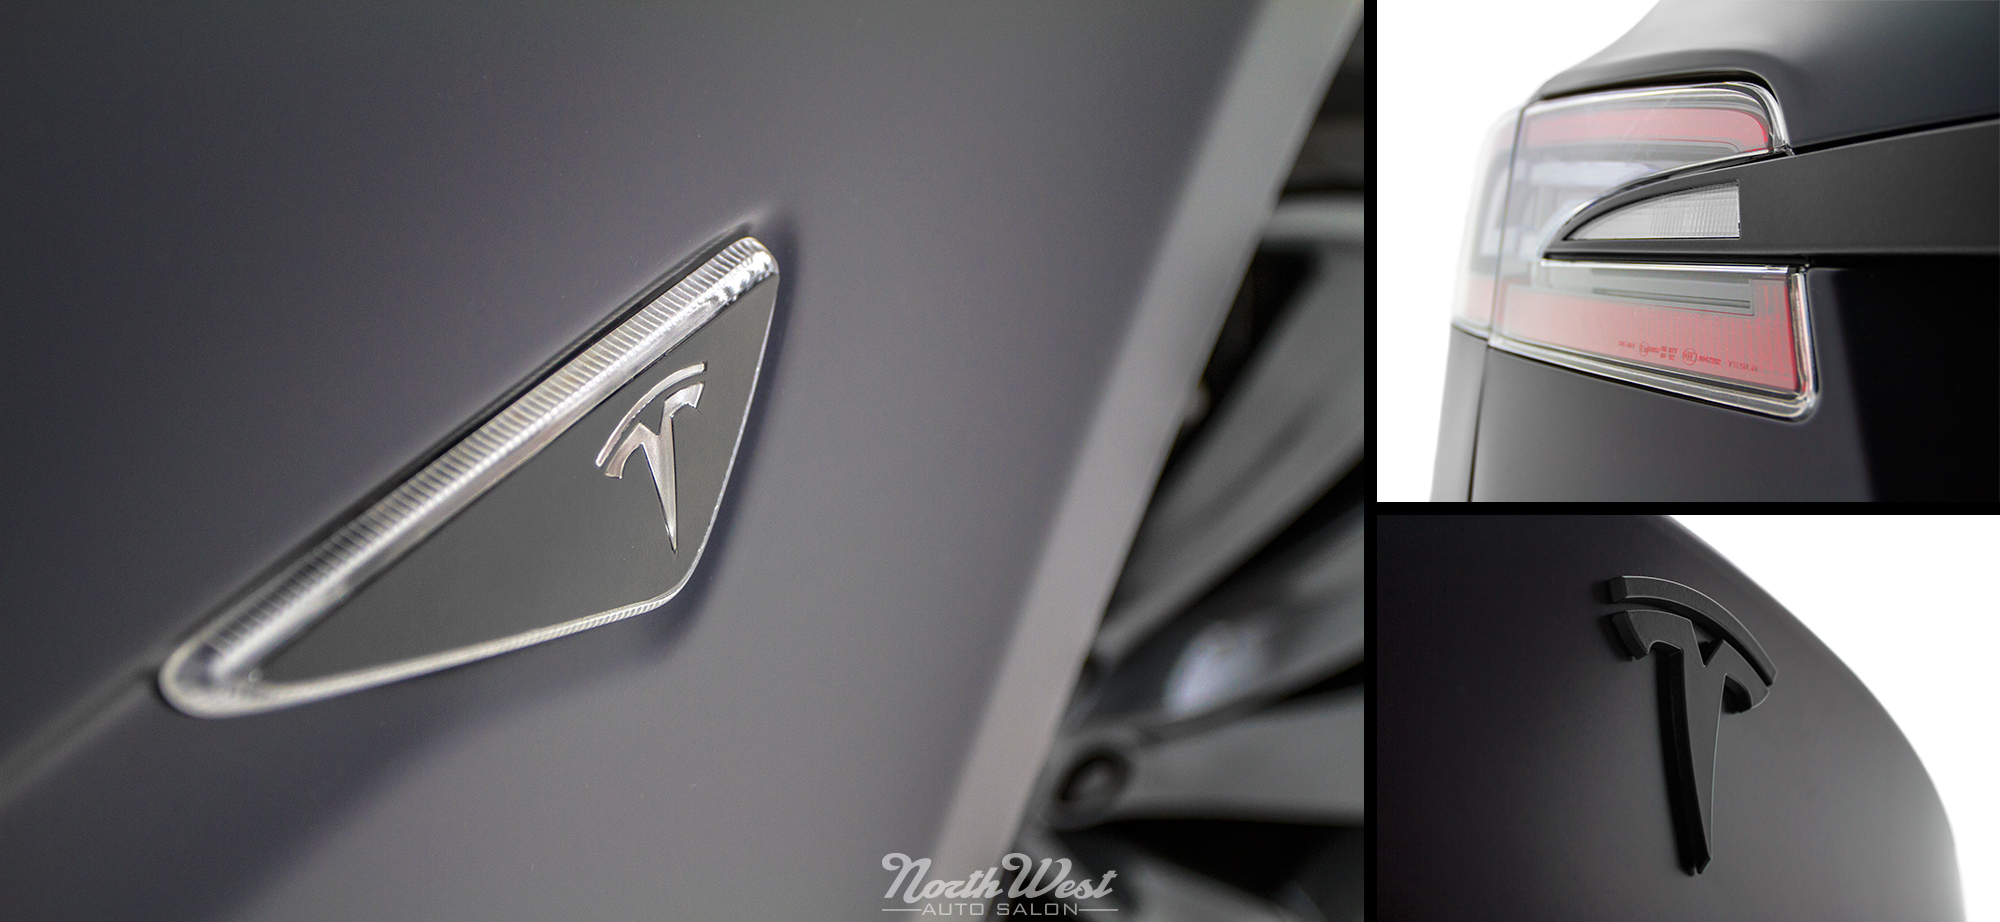 tesla-model-s-signature-wrapped-satin-xpel-stealth-paint-protection-clear-bra-northwest-auto-sal.jpg